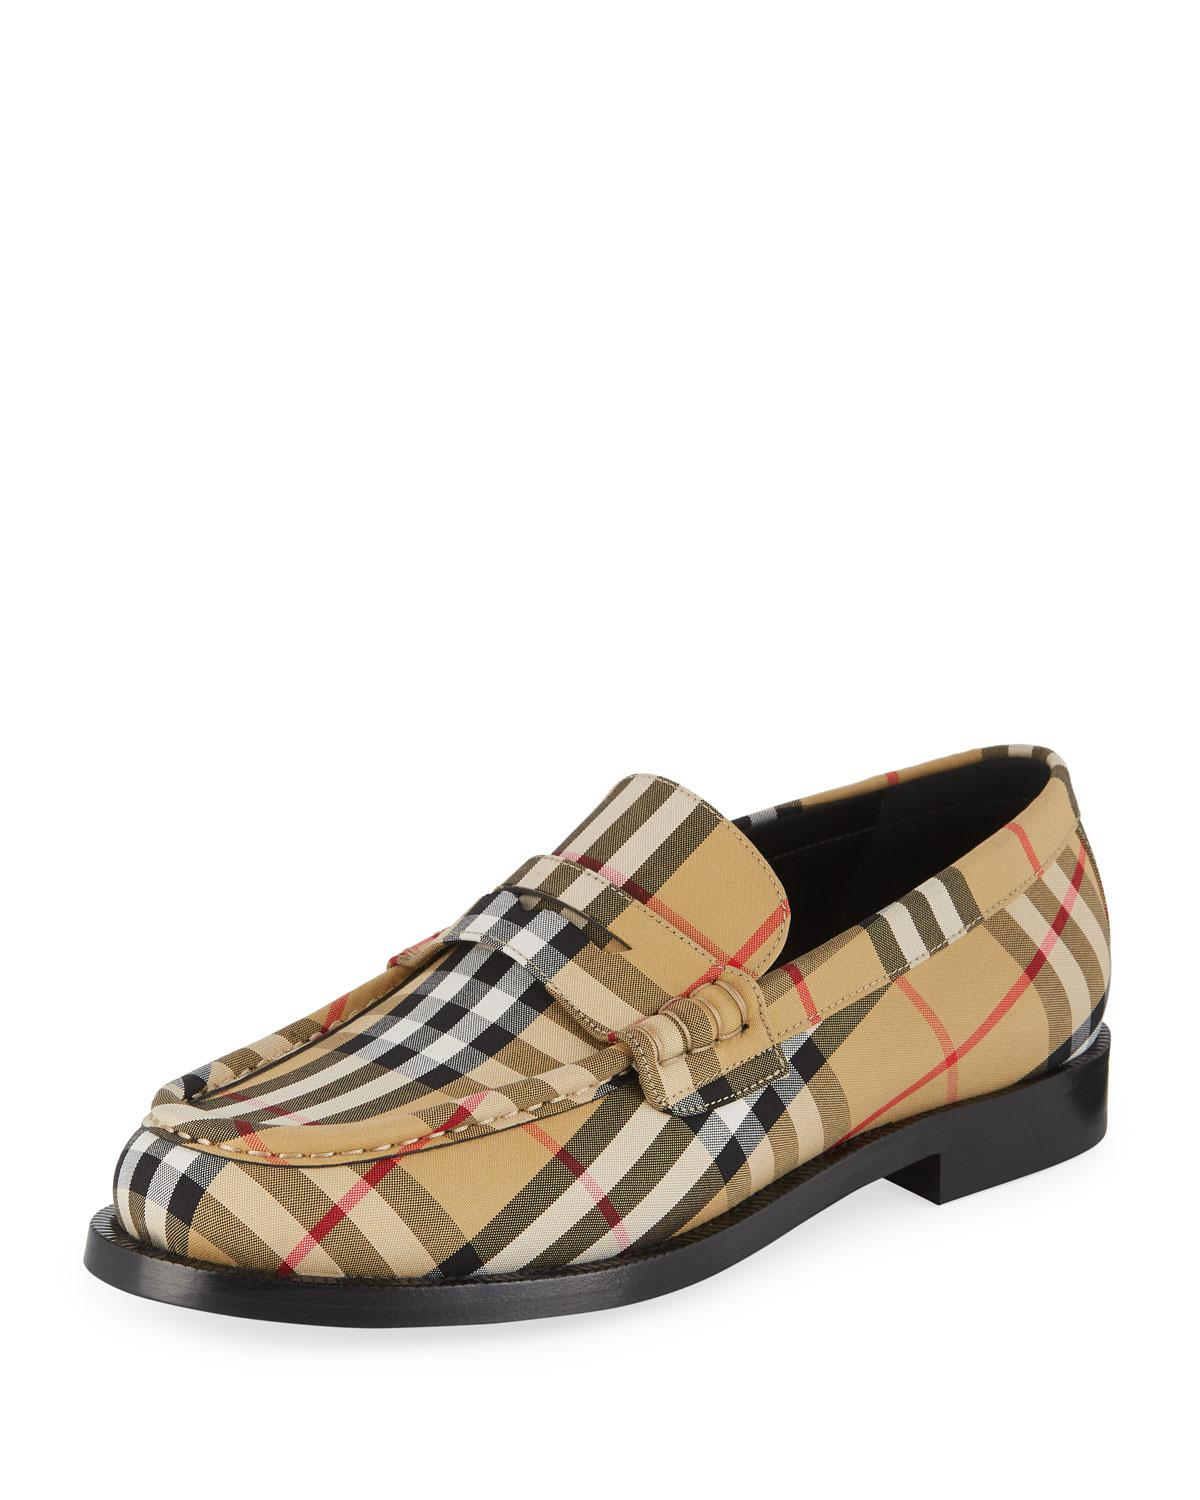 sneakers for cheap for whole family quite nice Men's Moore Signature Check Penny Loafer